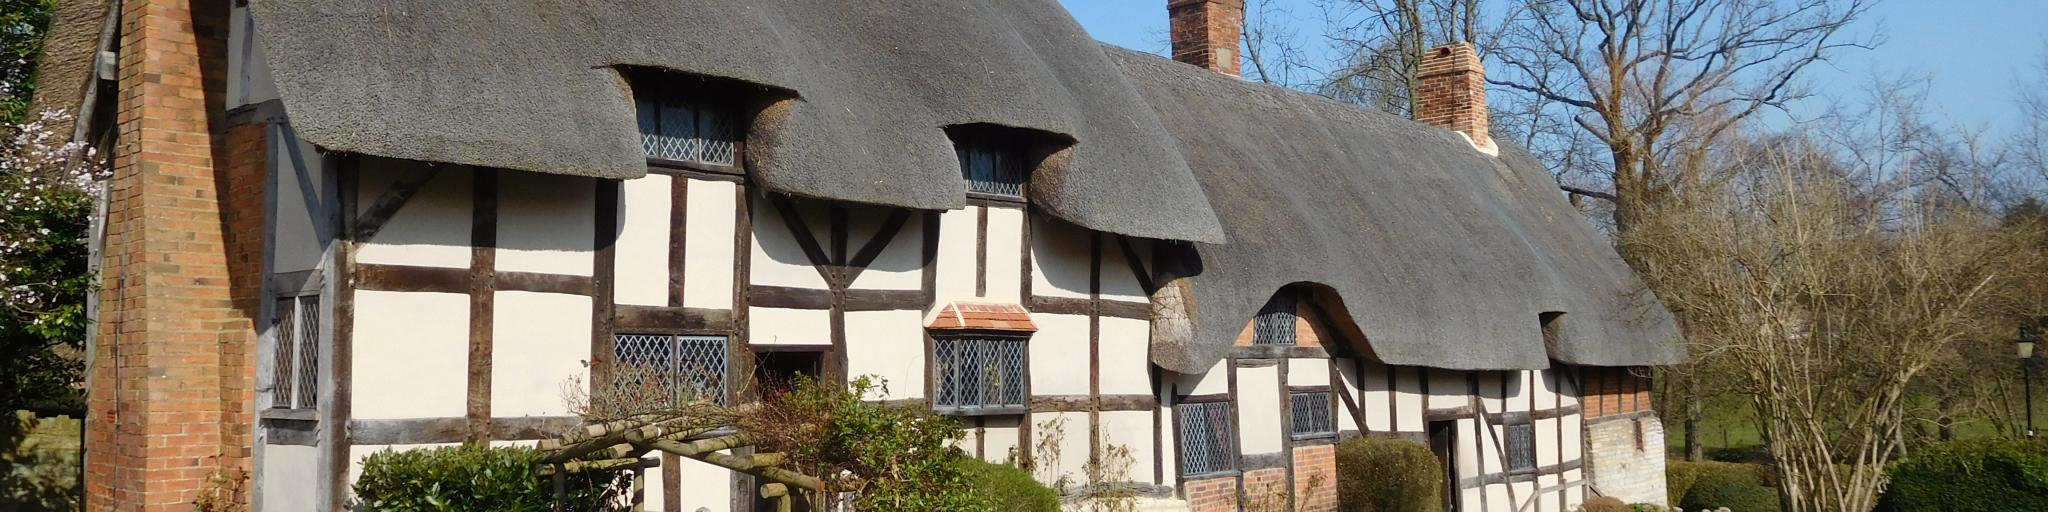 The white thatched cottage of Shakespeare's mother on a sunny day, surrounded by green hedges and trees